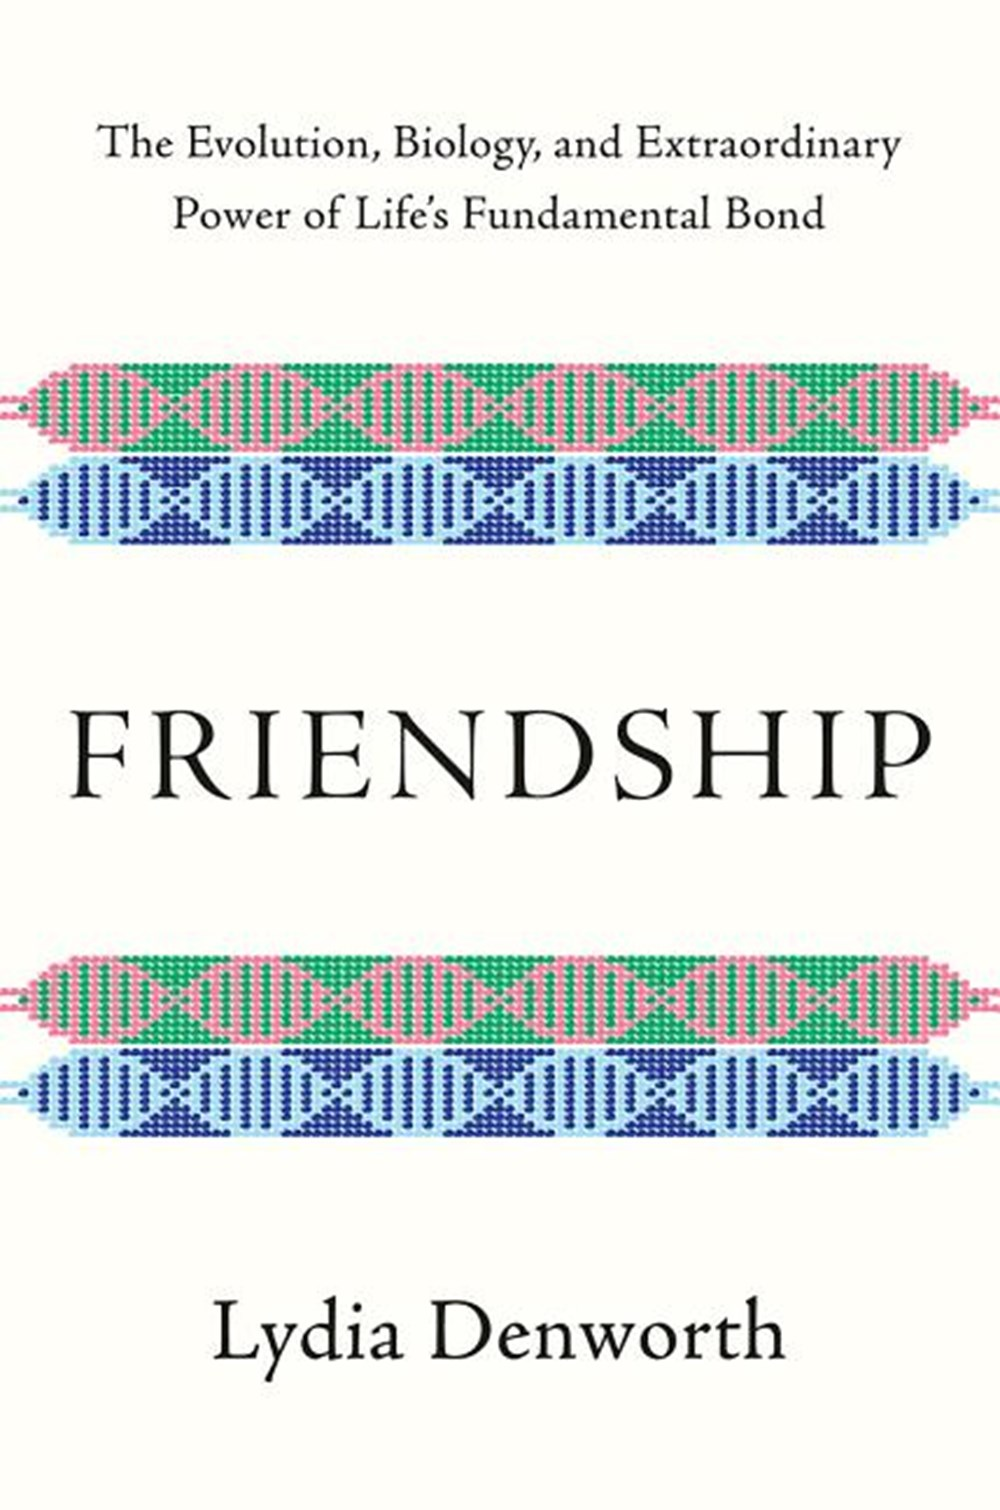 Friendship The Evolution, Biology, and Extraordinary Power of Life's Fundamental Bond